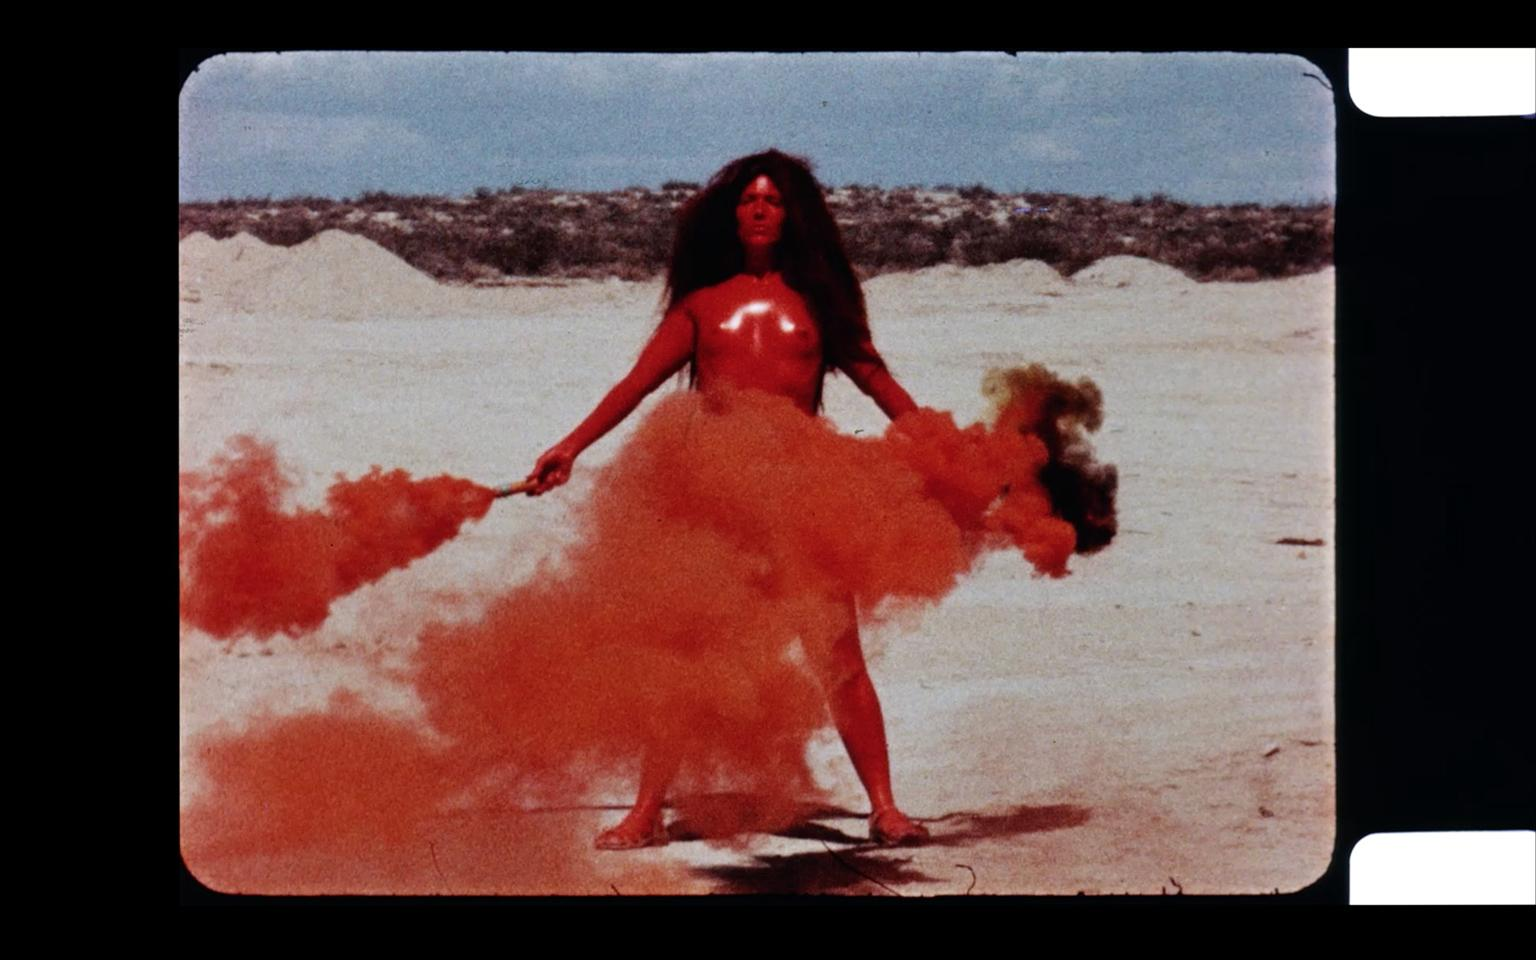 Judy Chicago, Women and Smoke, 1971. EXPO VIDEO, Curated by Anna Gritz (Curator, KW Institute for Contemporary Art, Berlin). Image courtesy of Jessica Silverman Gallery, San Francisco and Salon 94 (New York) and EXPO CHICAGO.